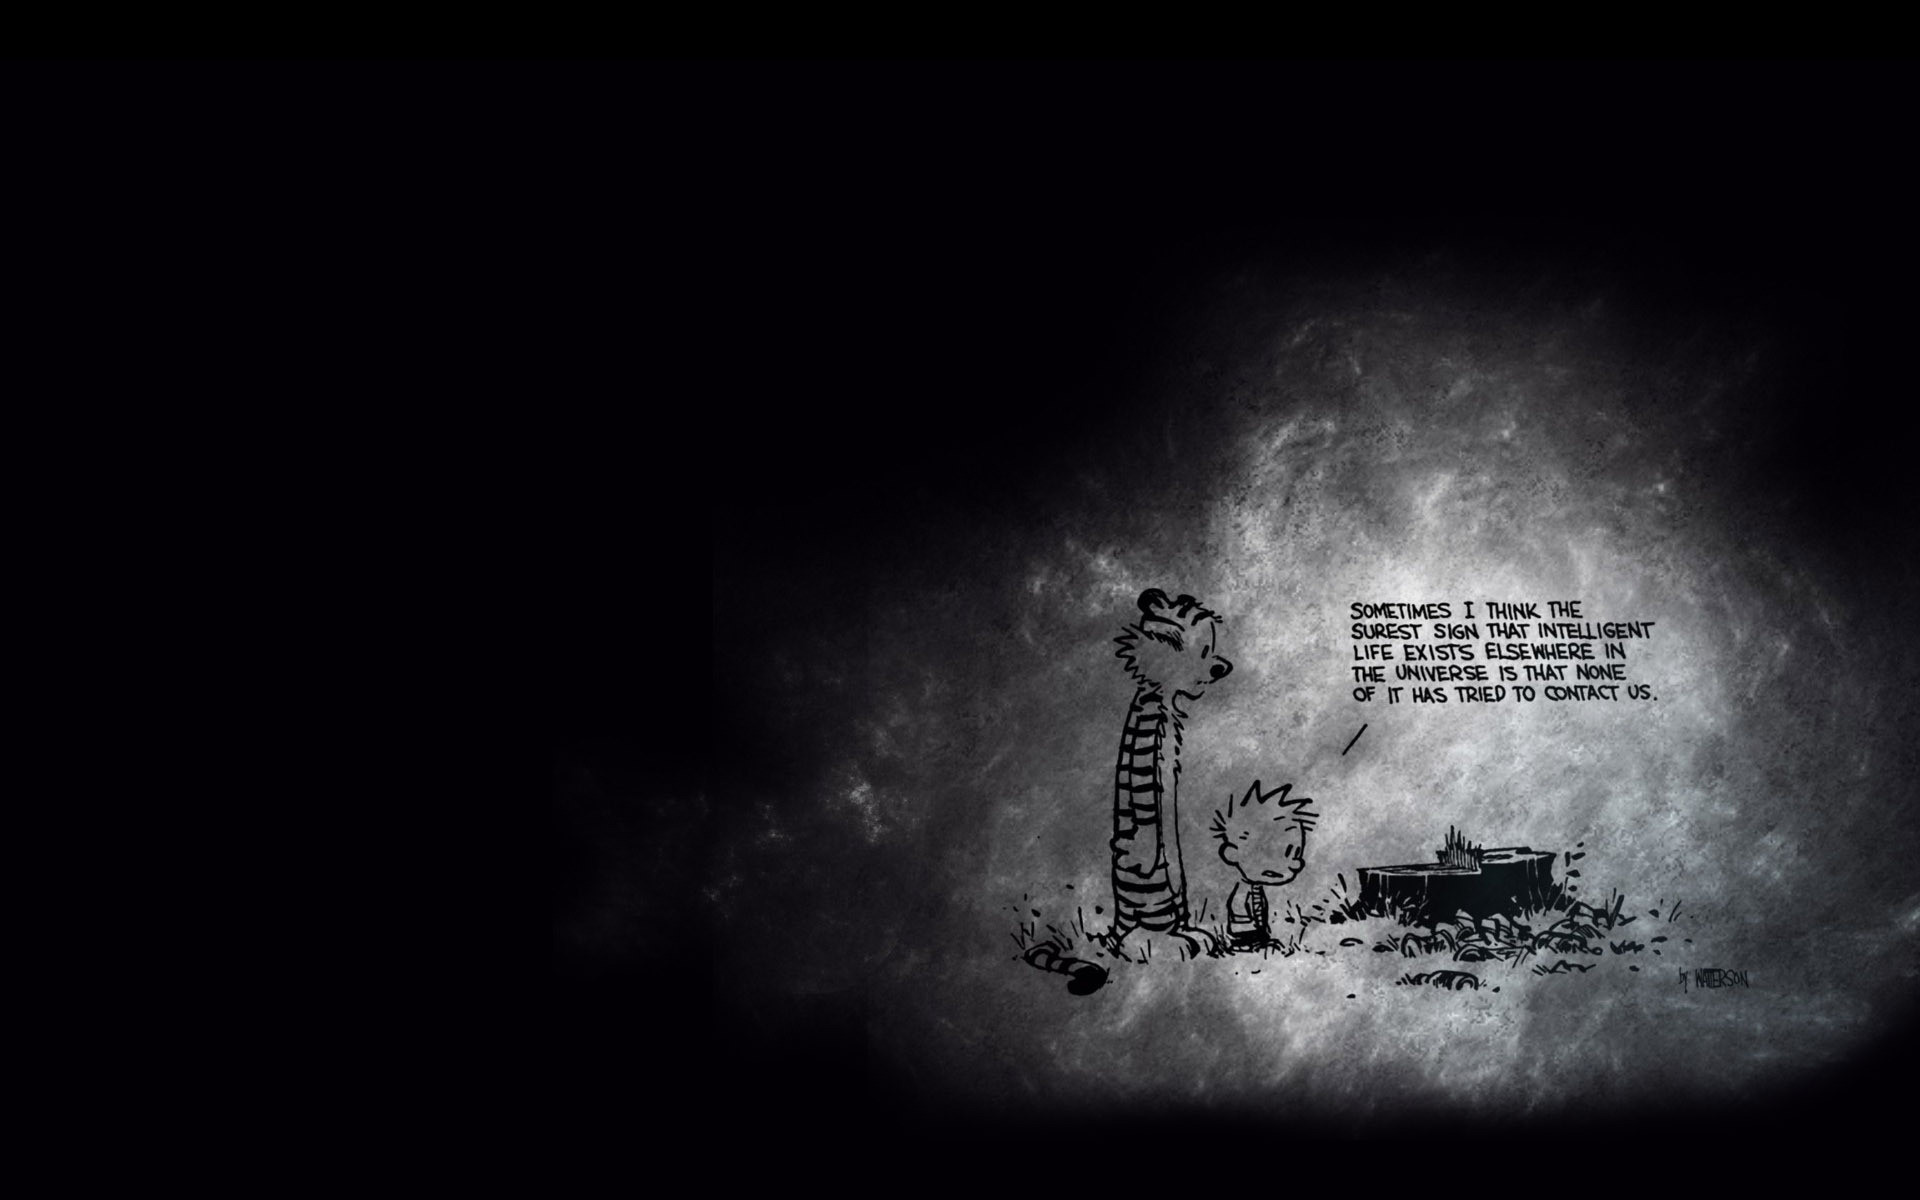 1920x1200 Calvin and Hobbes HD Wallpaper 1920x1080 Calvin and Hobbes HD Wallpaper